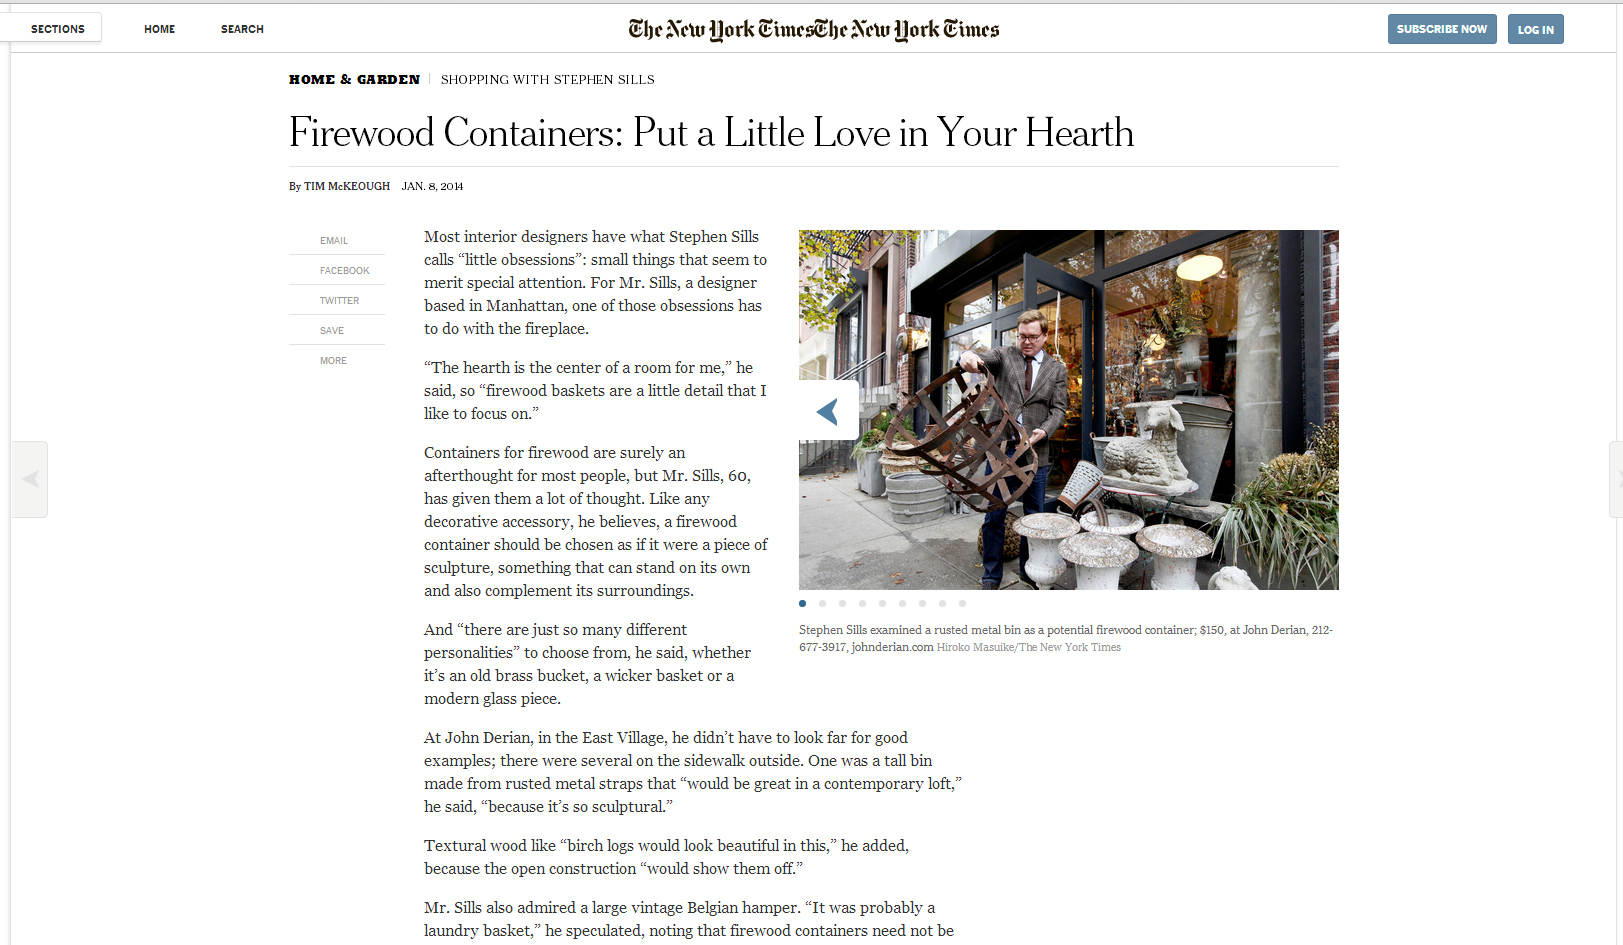 Tivoli Ny Ny Times Shopping With Stephen In The New York Times Today